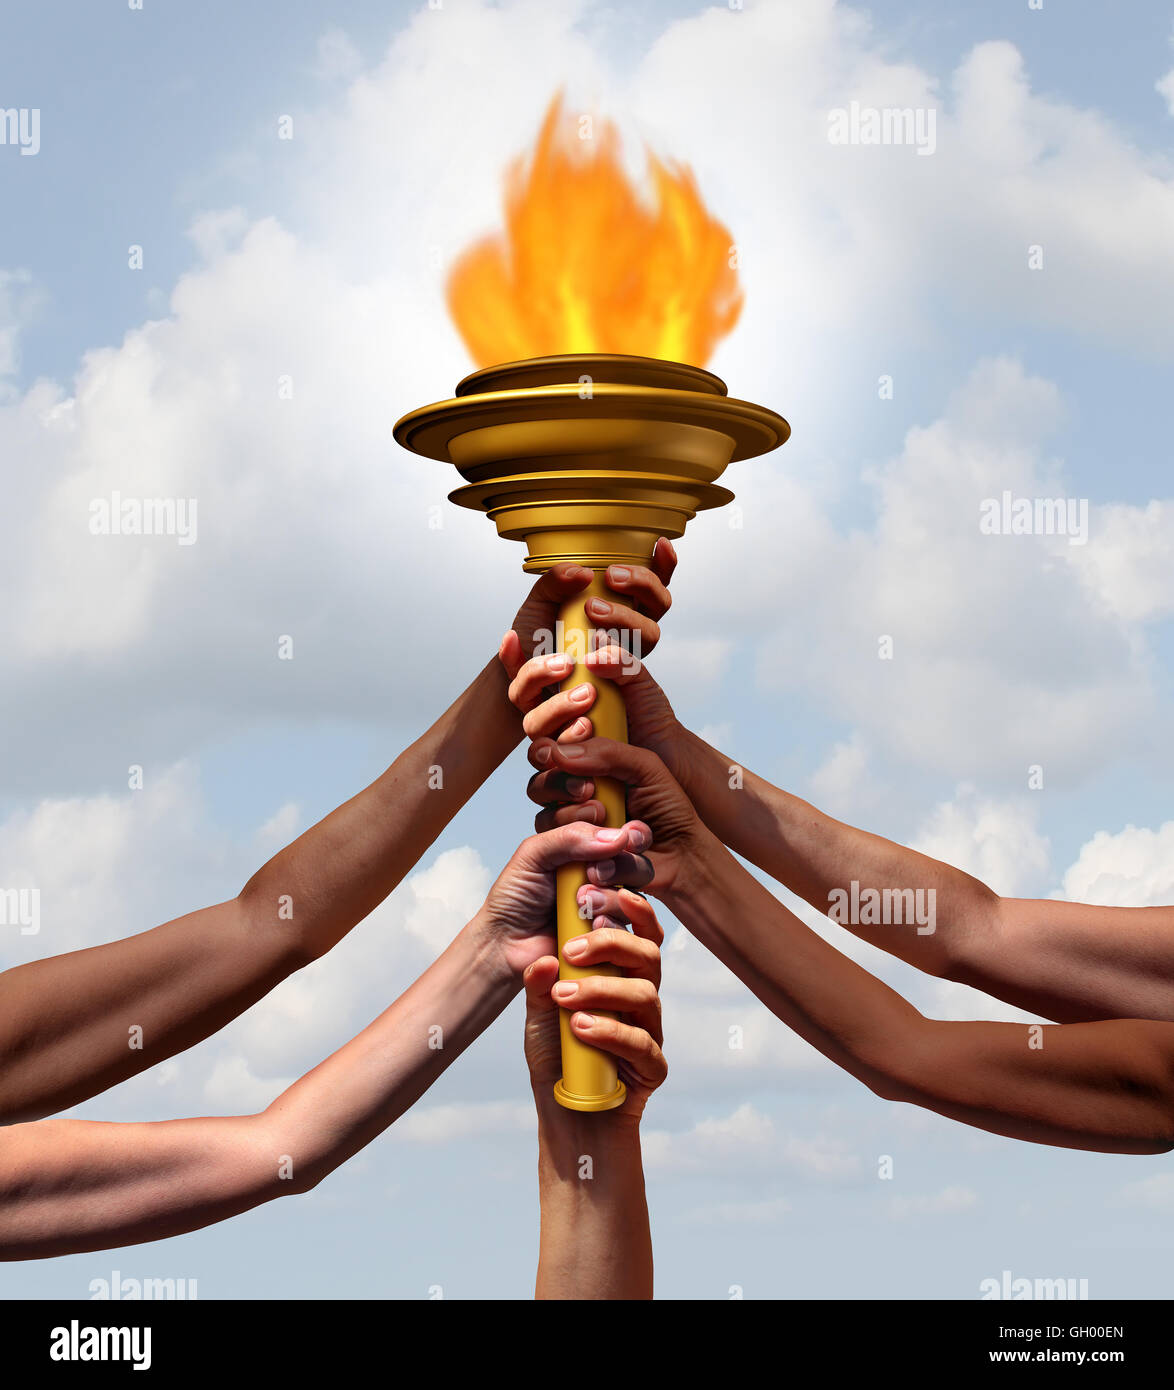 People holding a torch flame symbol as a group of diverse athletes or community members joining in lifting a cresset - Stock Image